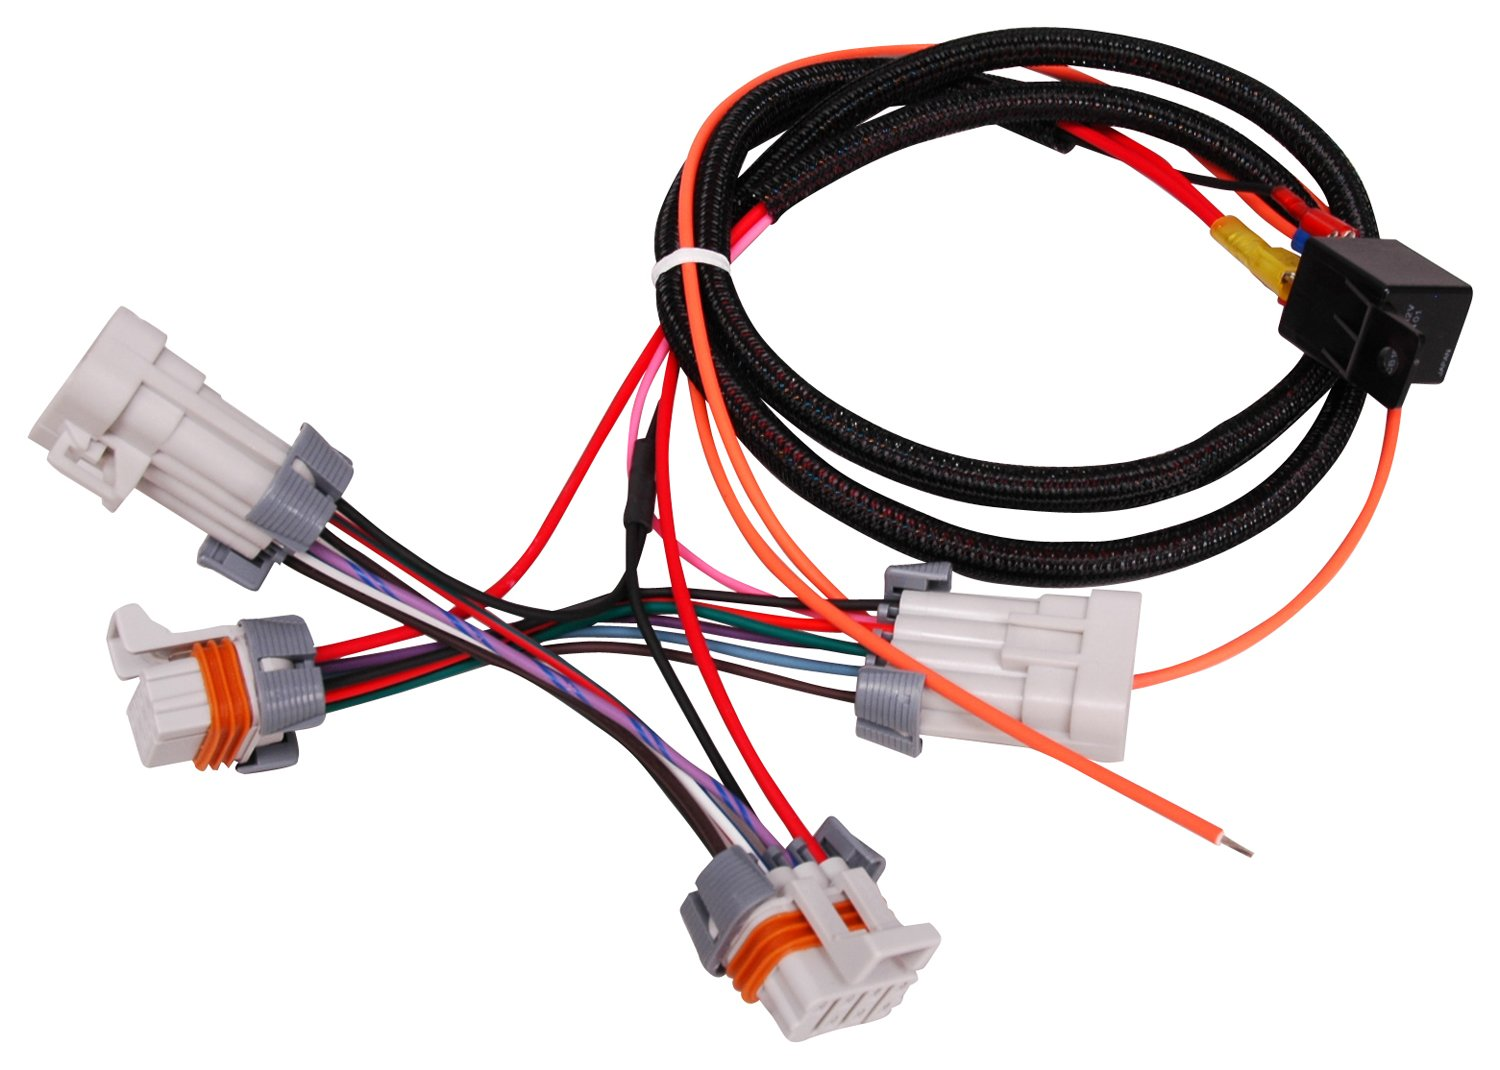 88867_v1 harnesses msd performance products tech support 888 258 3835 Standalone Wiring Harness 5 3 at bakdesigns.co